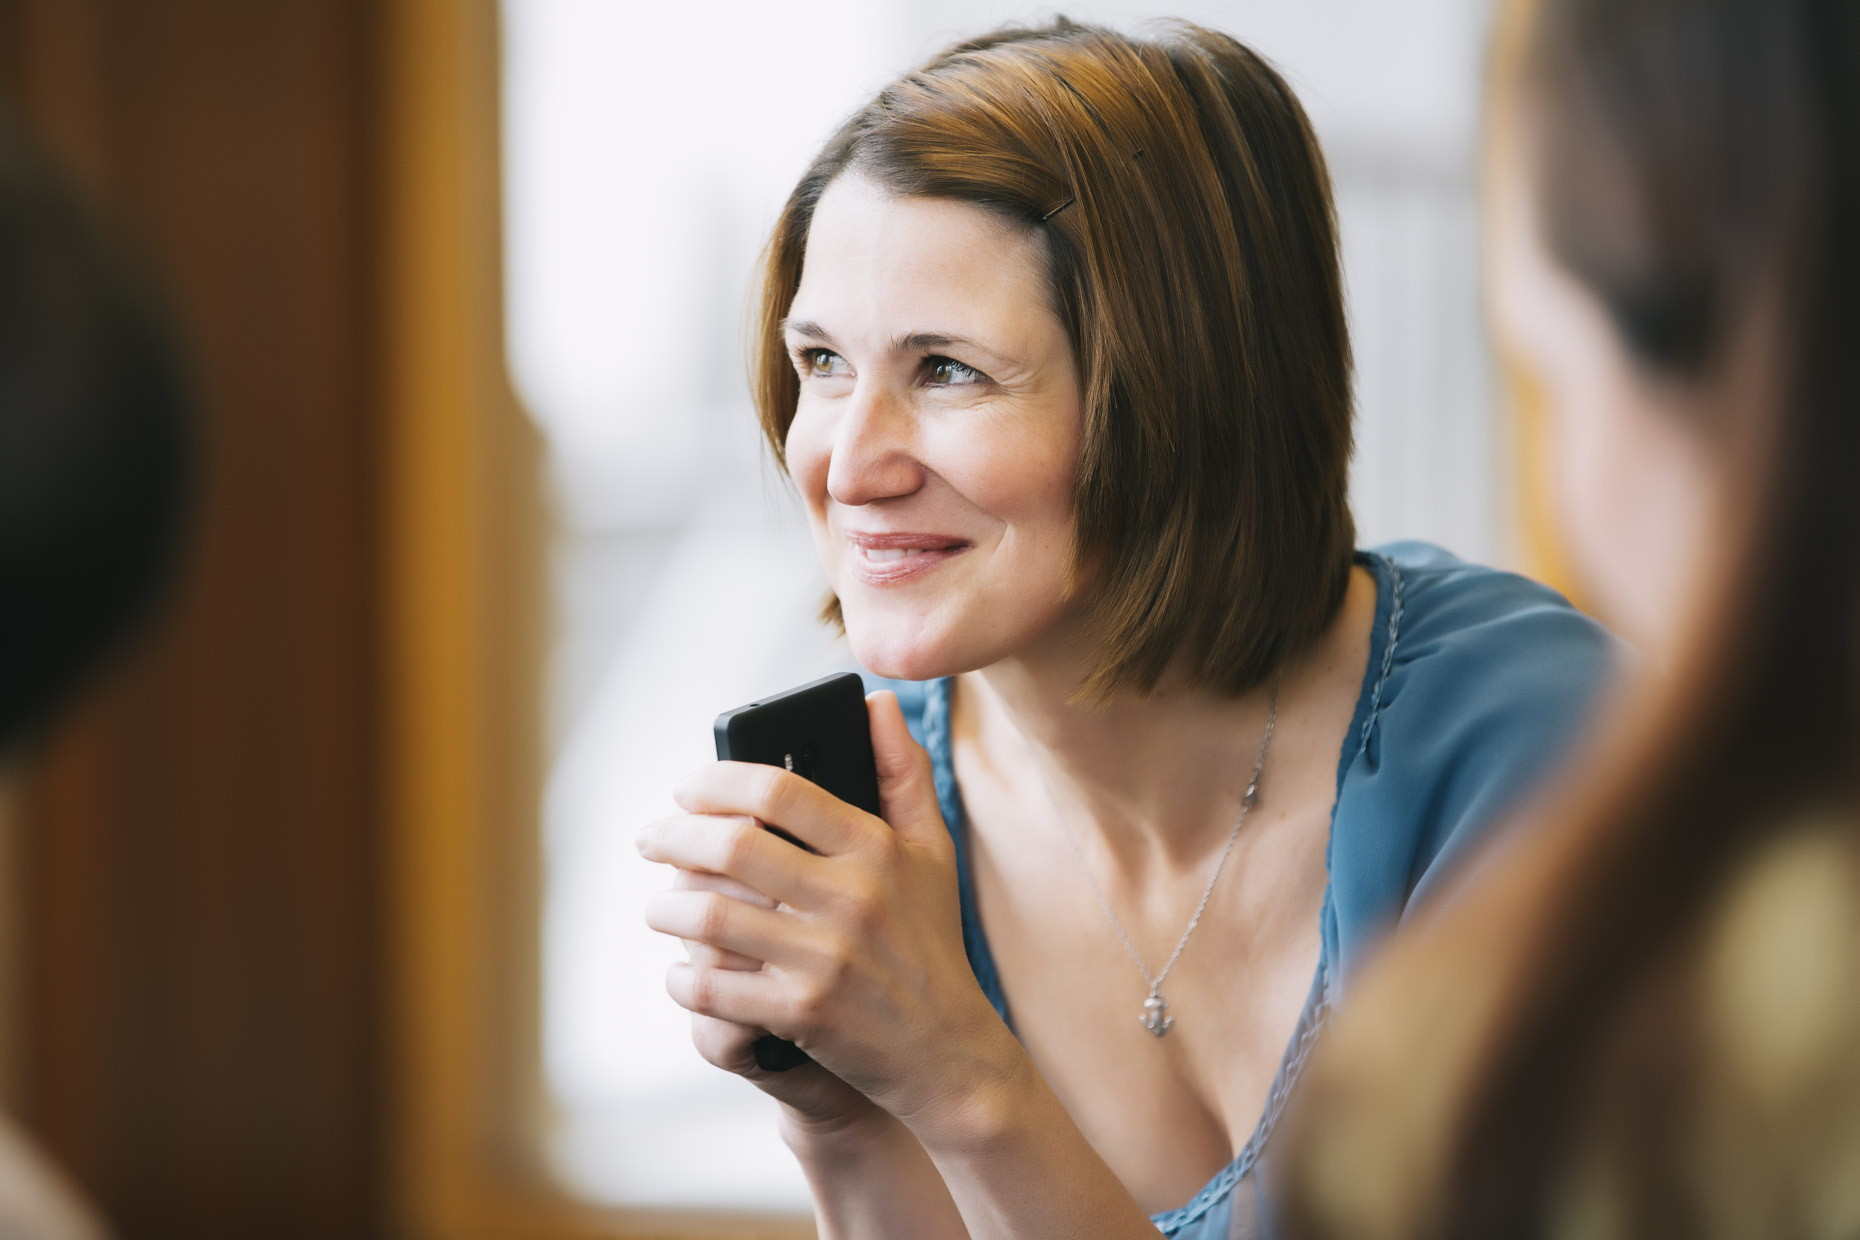 Inti St Clair photo of smiling woman in business meeting holding smartphone